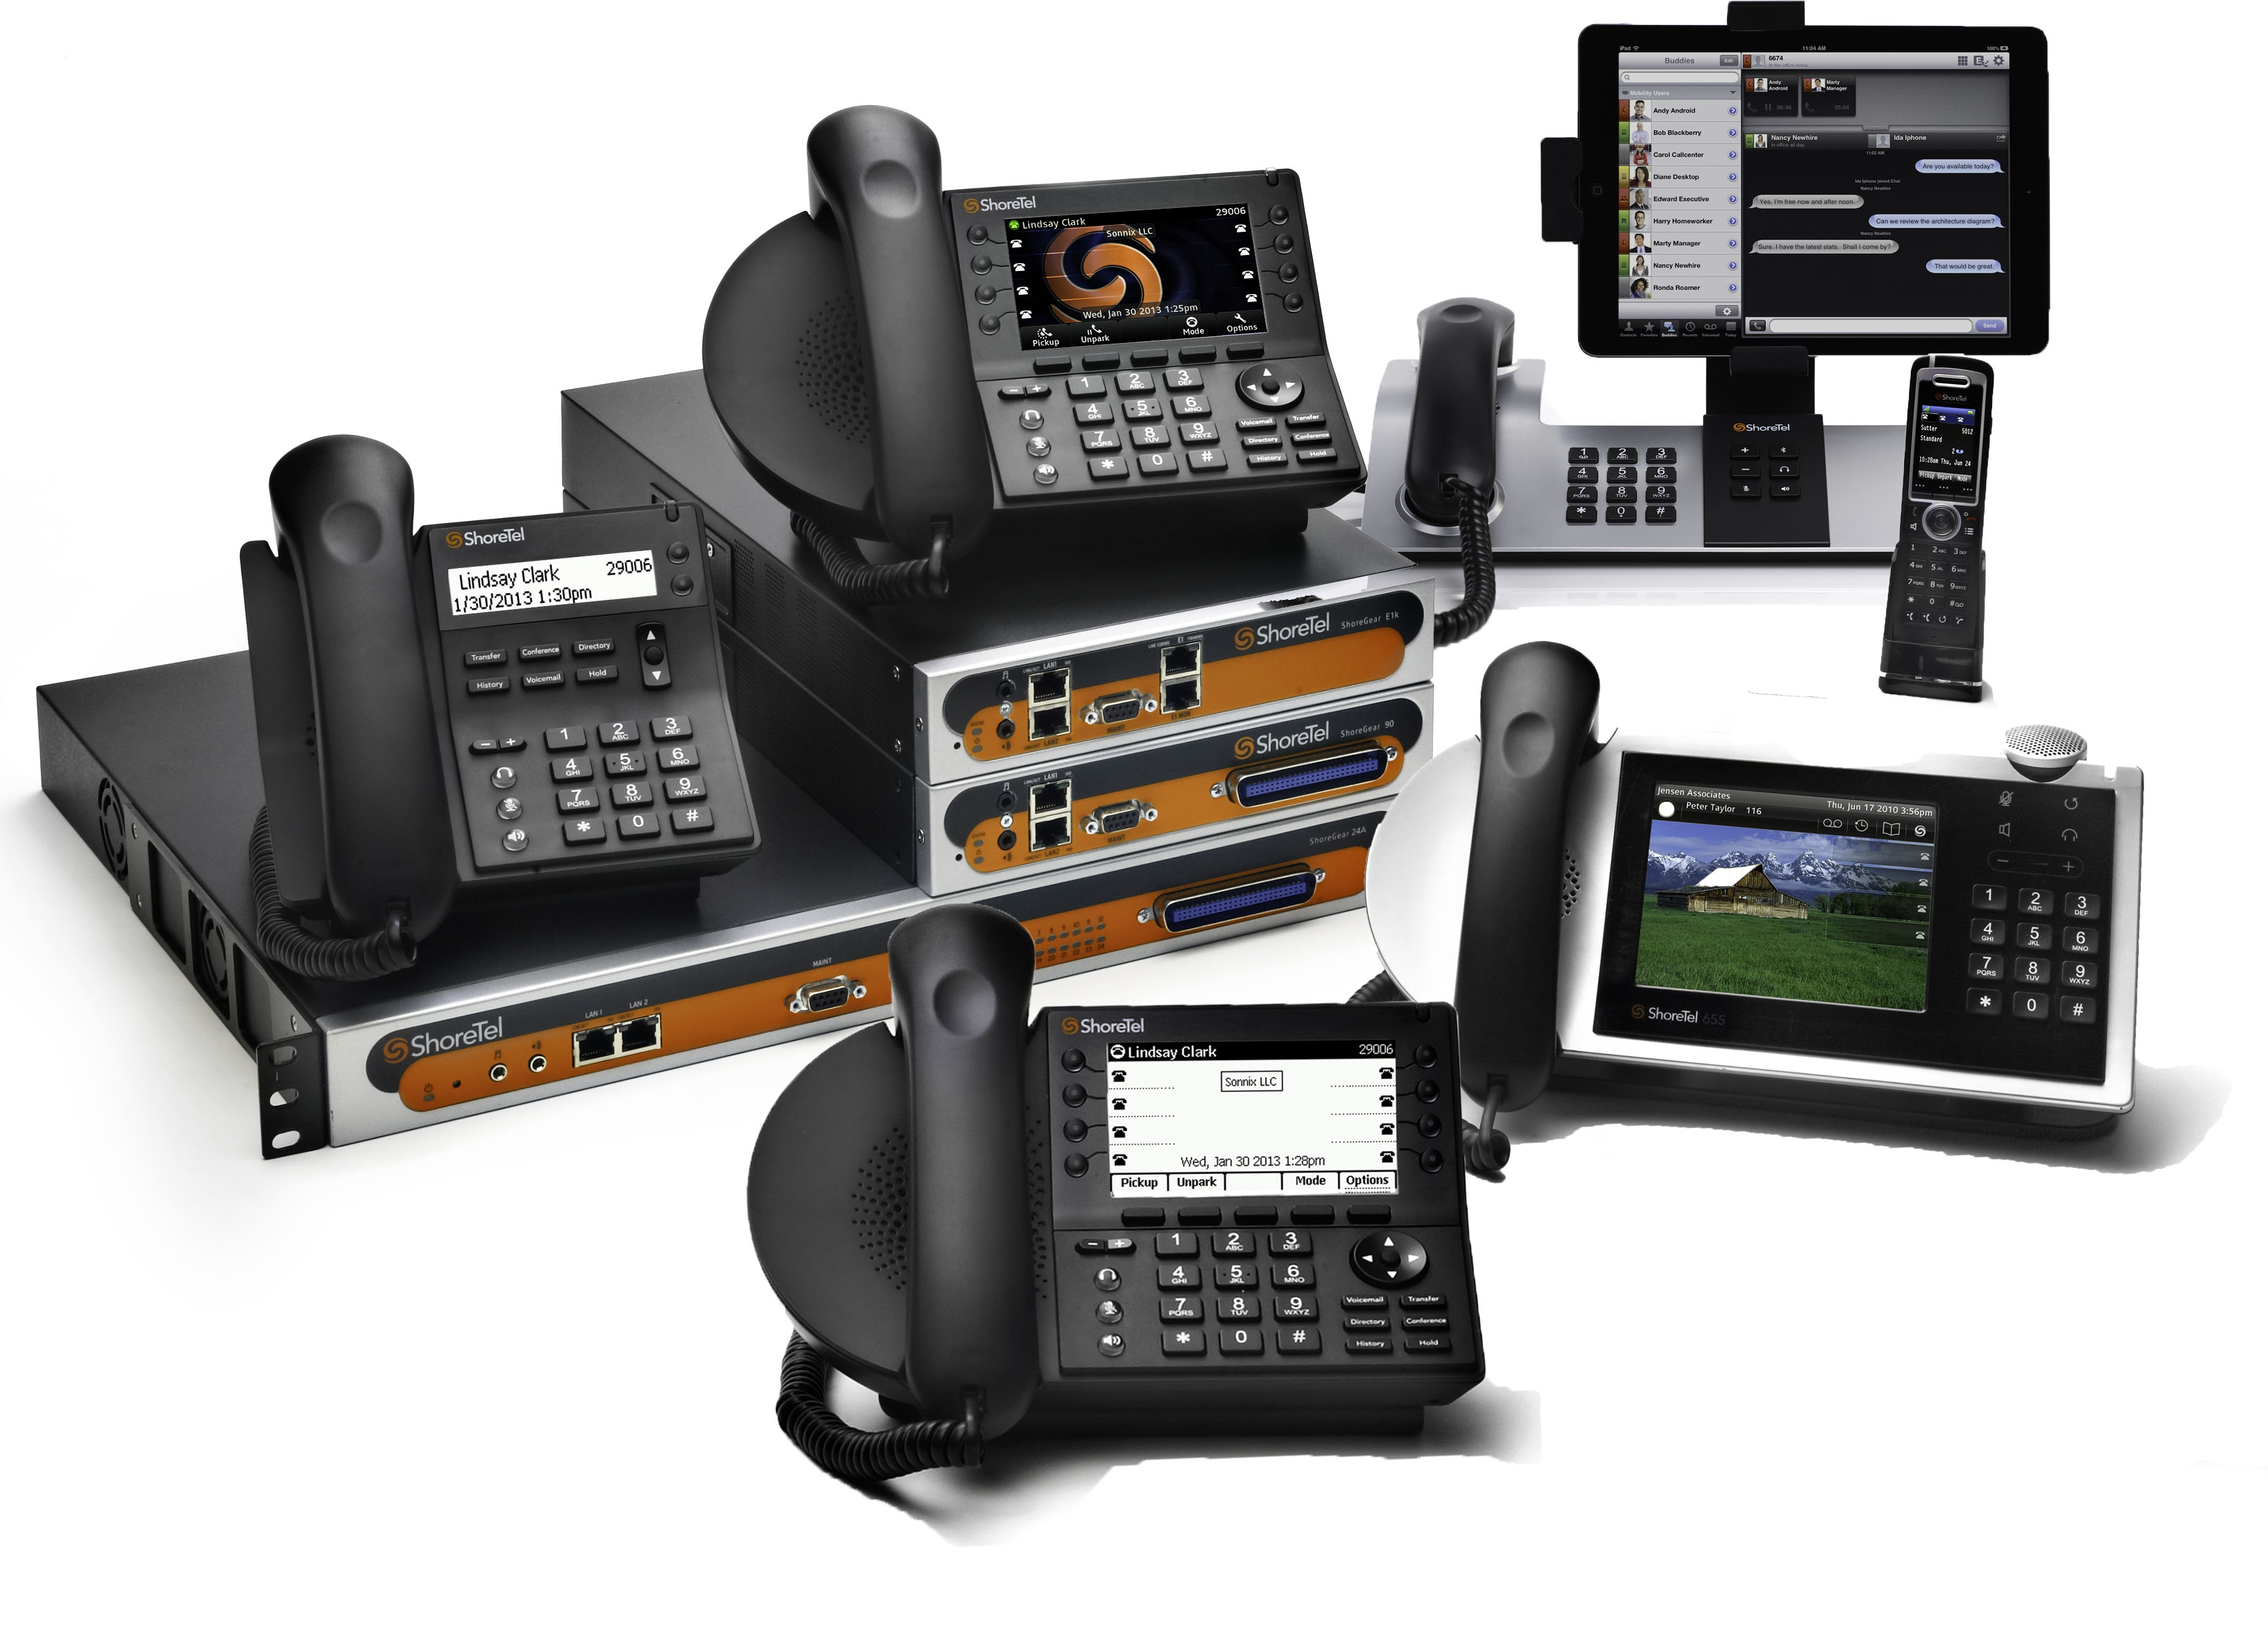 ShoreTel VoIP Phone System